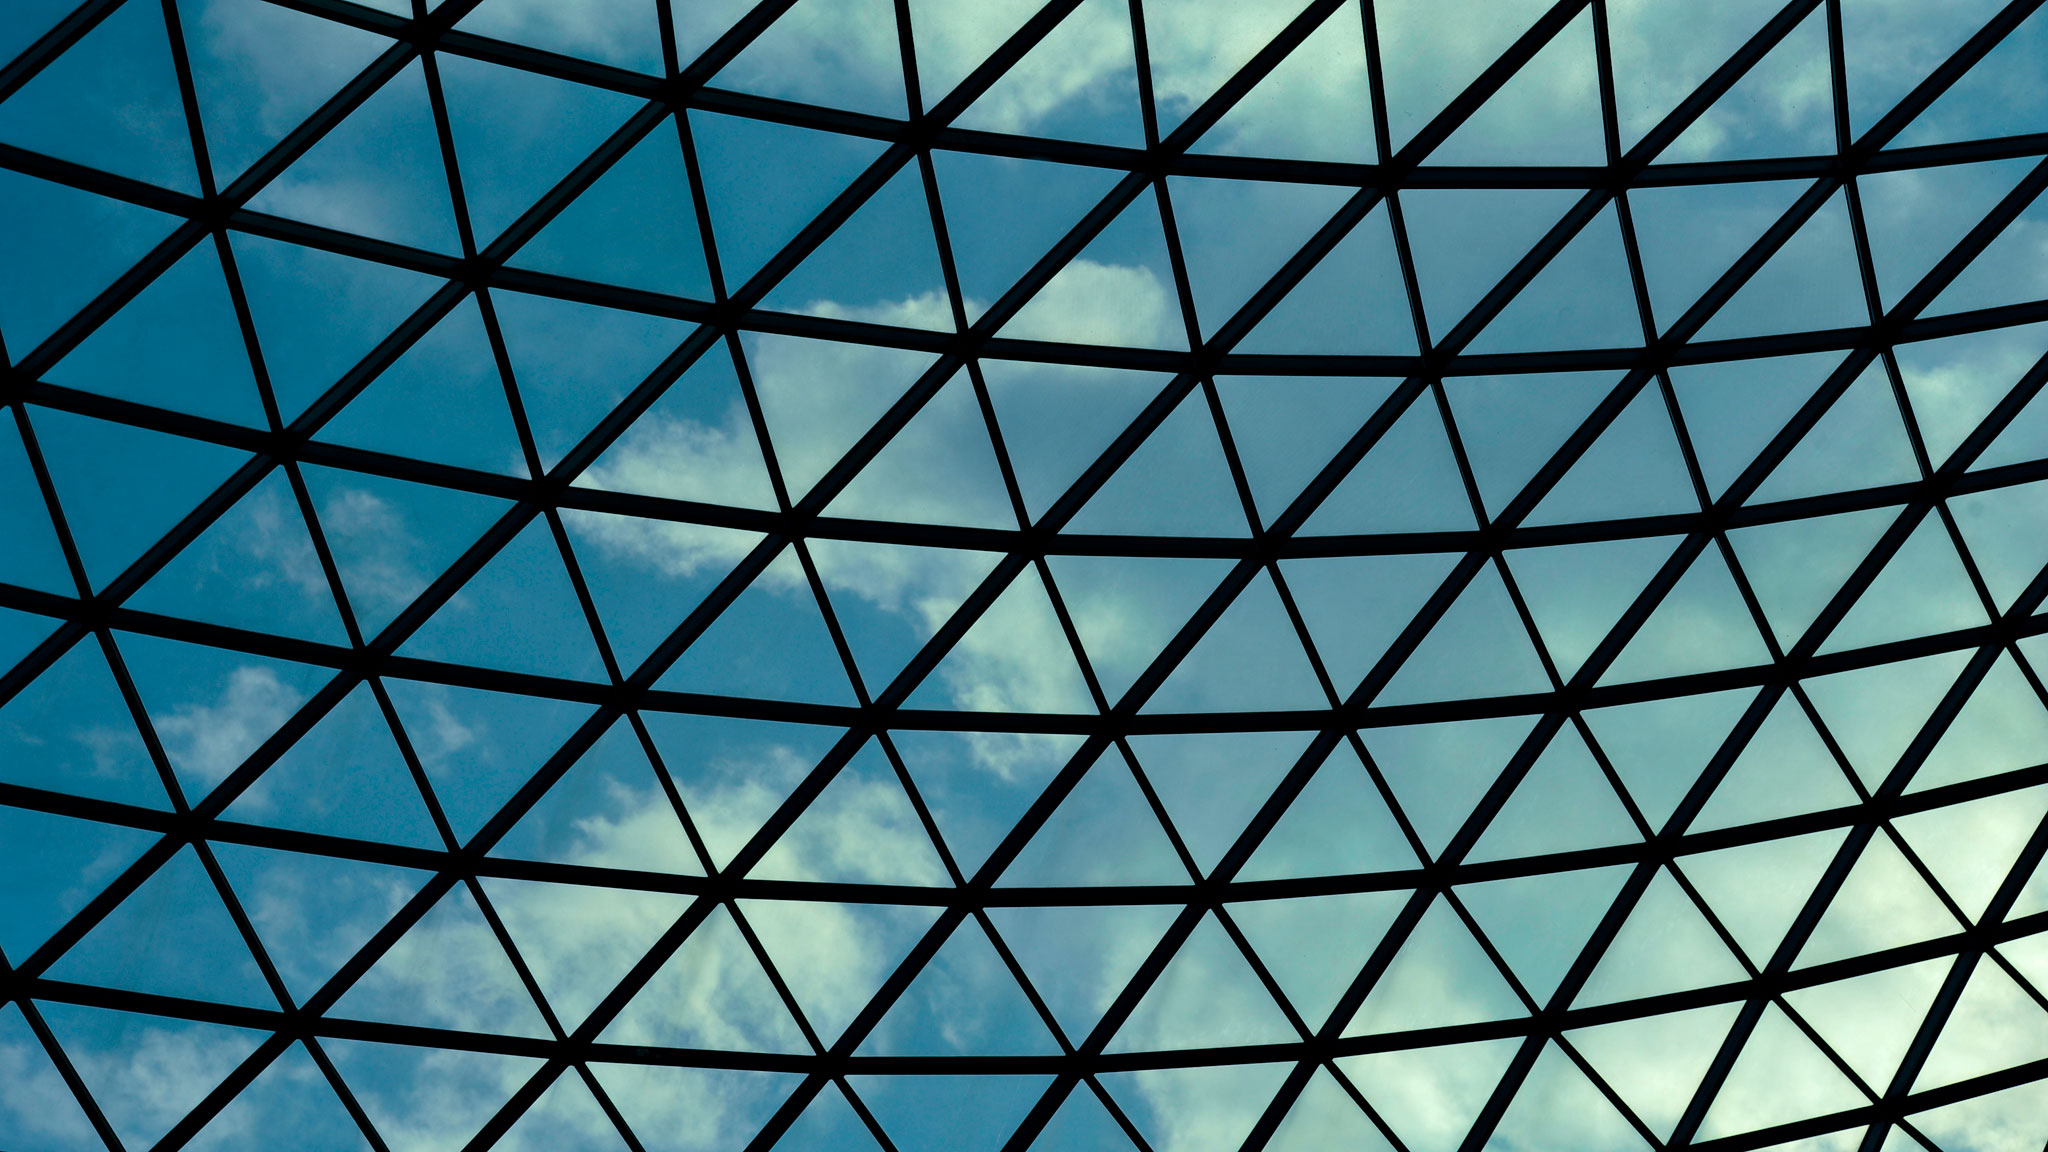 close up of a glass roof